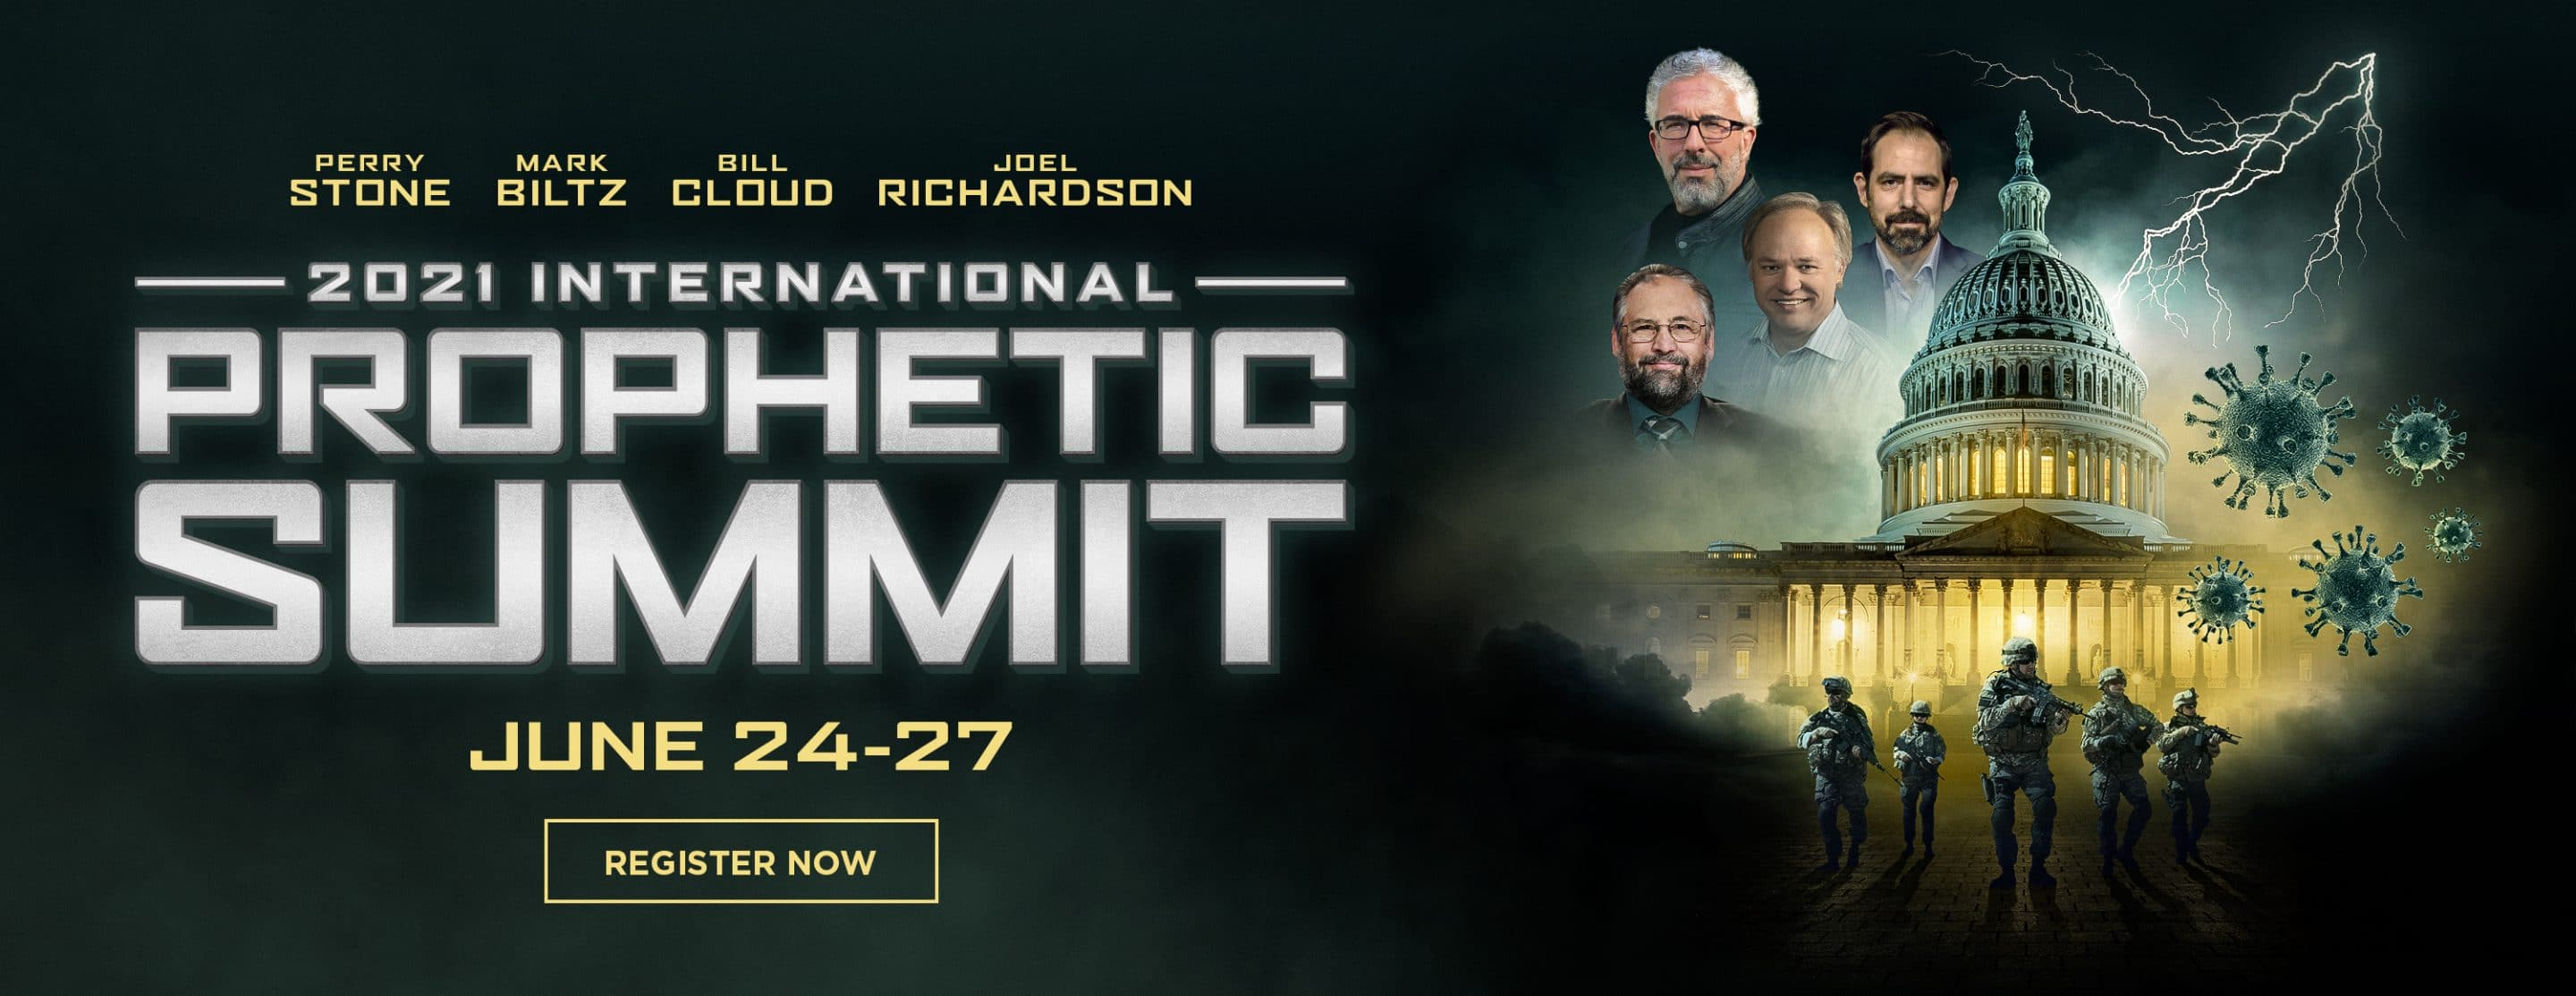 2021 Prophetic Summit – Website Banner